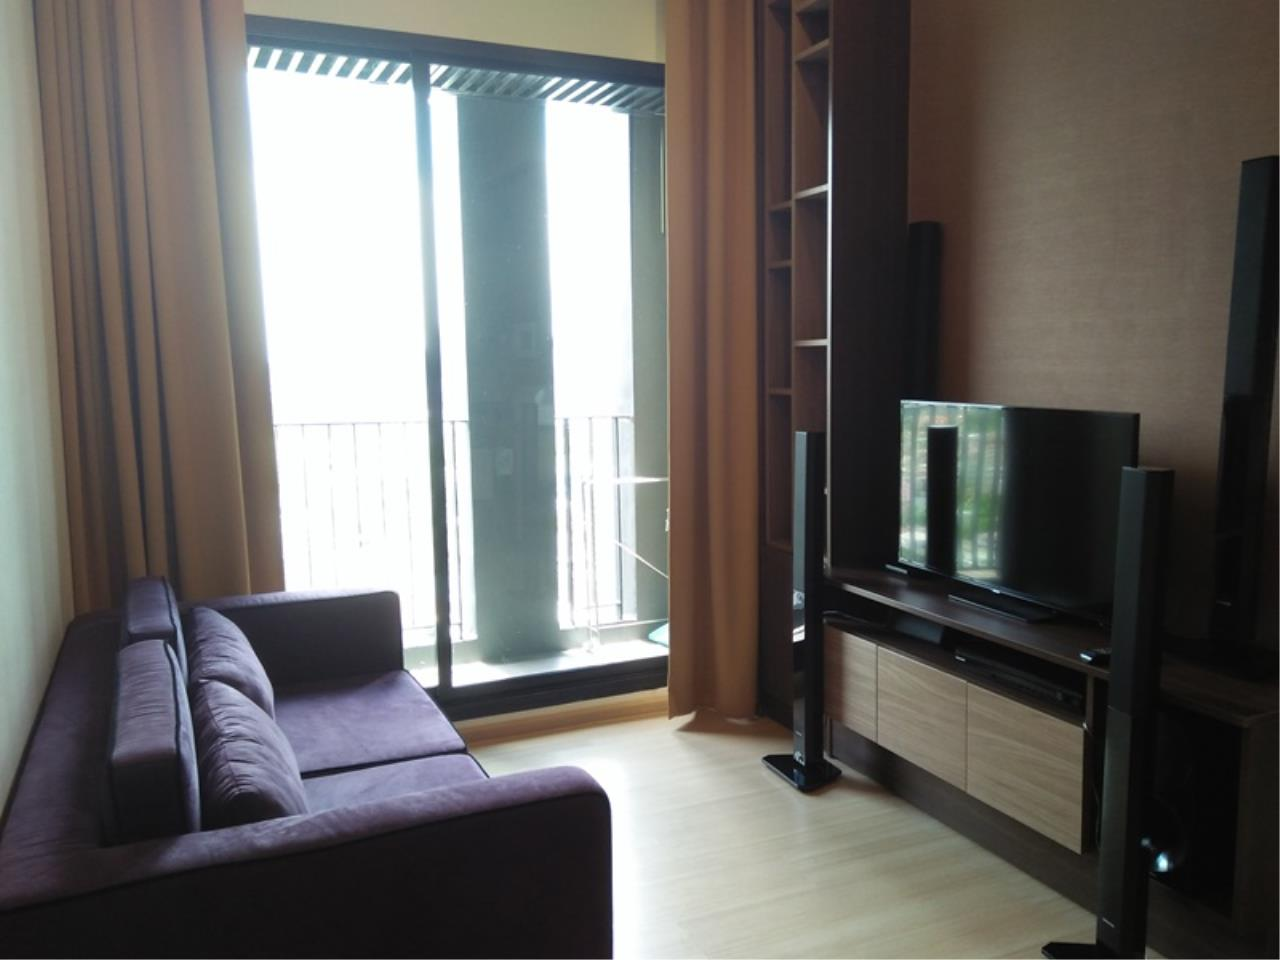 Siam Prop Agency's The Capital Ekamai - Thonglor Luxury Condo, 2 bedrooms for rent with 4-meter ceiling height 4